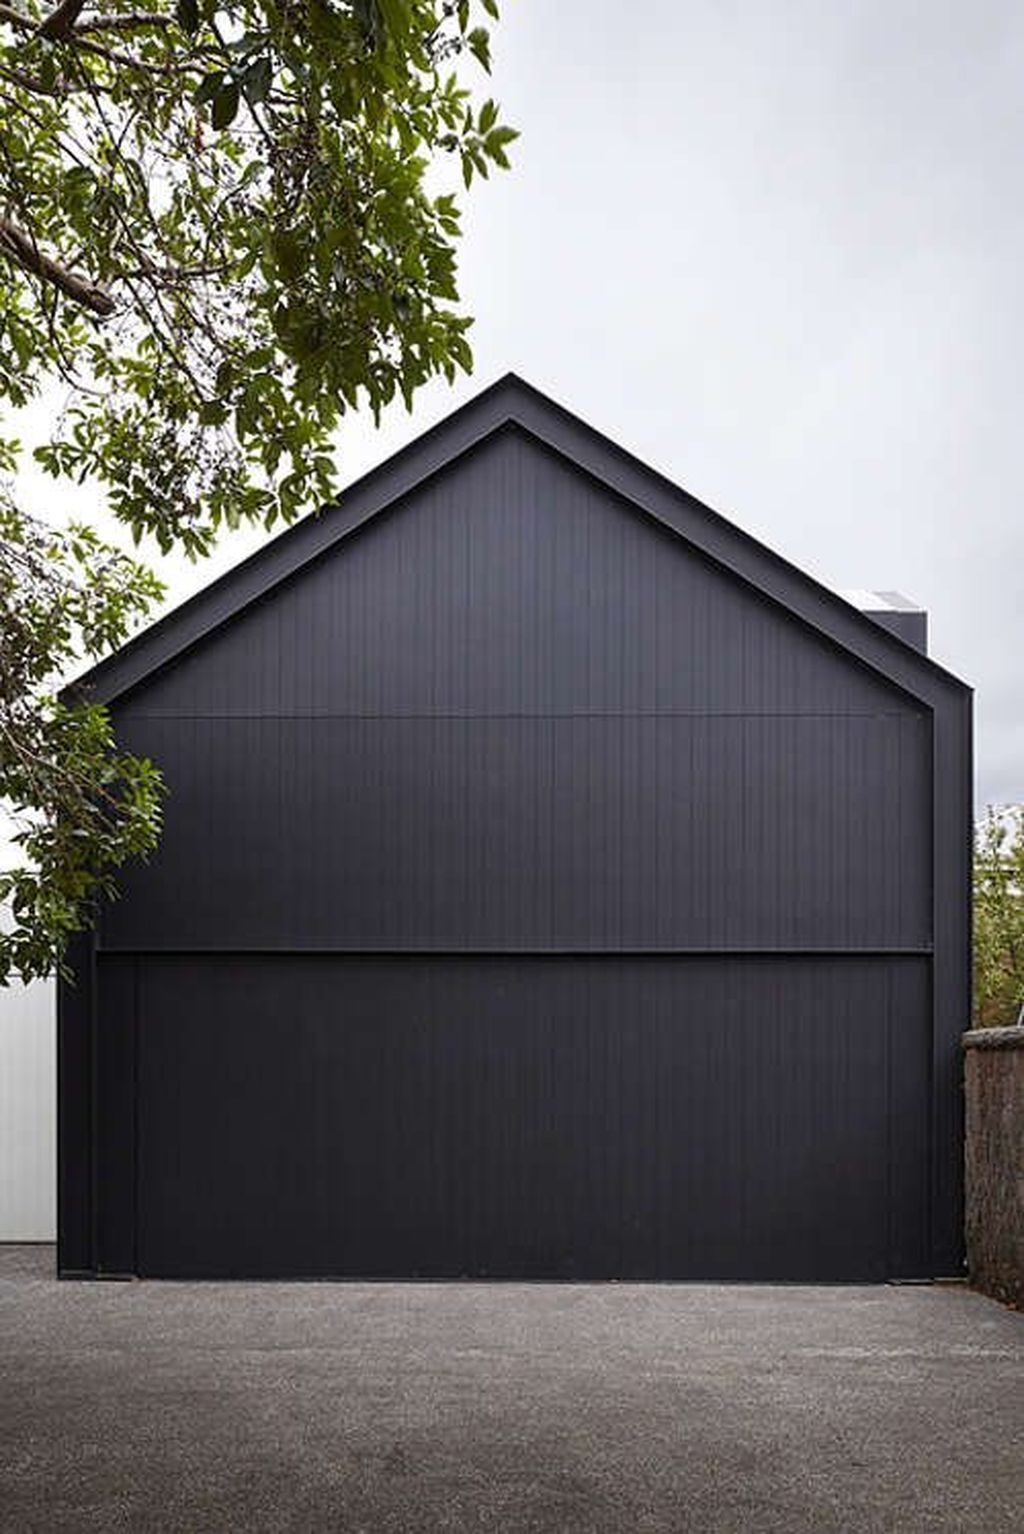 20+ Cute Home Garage Design Ideas For Your Minimalist Home | Home